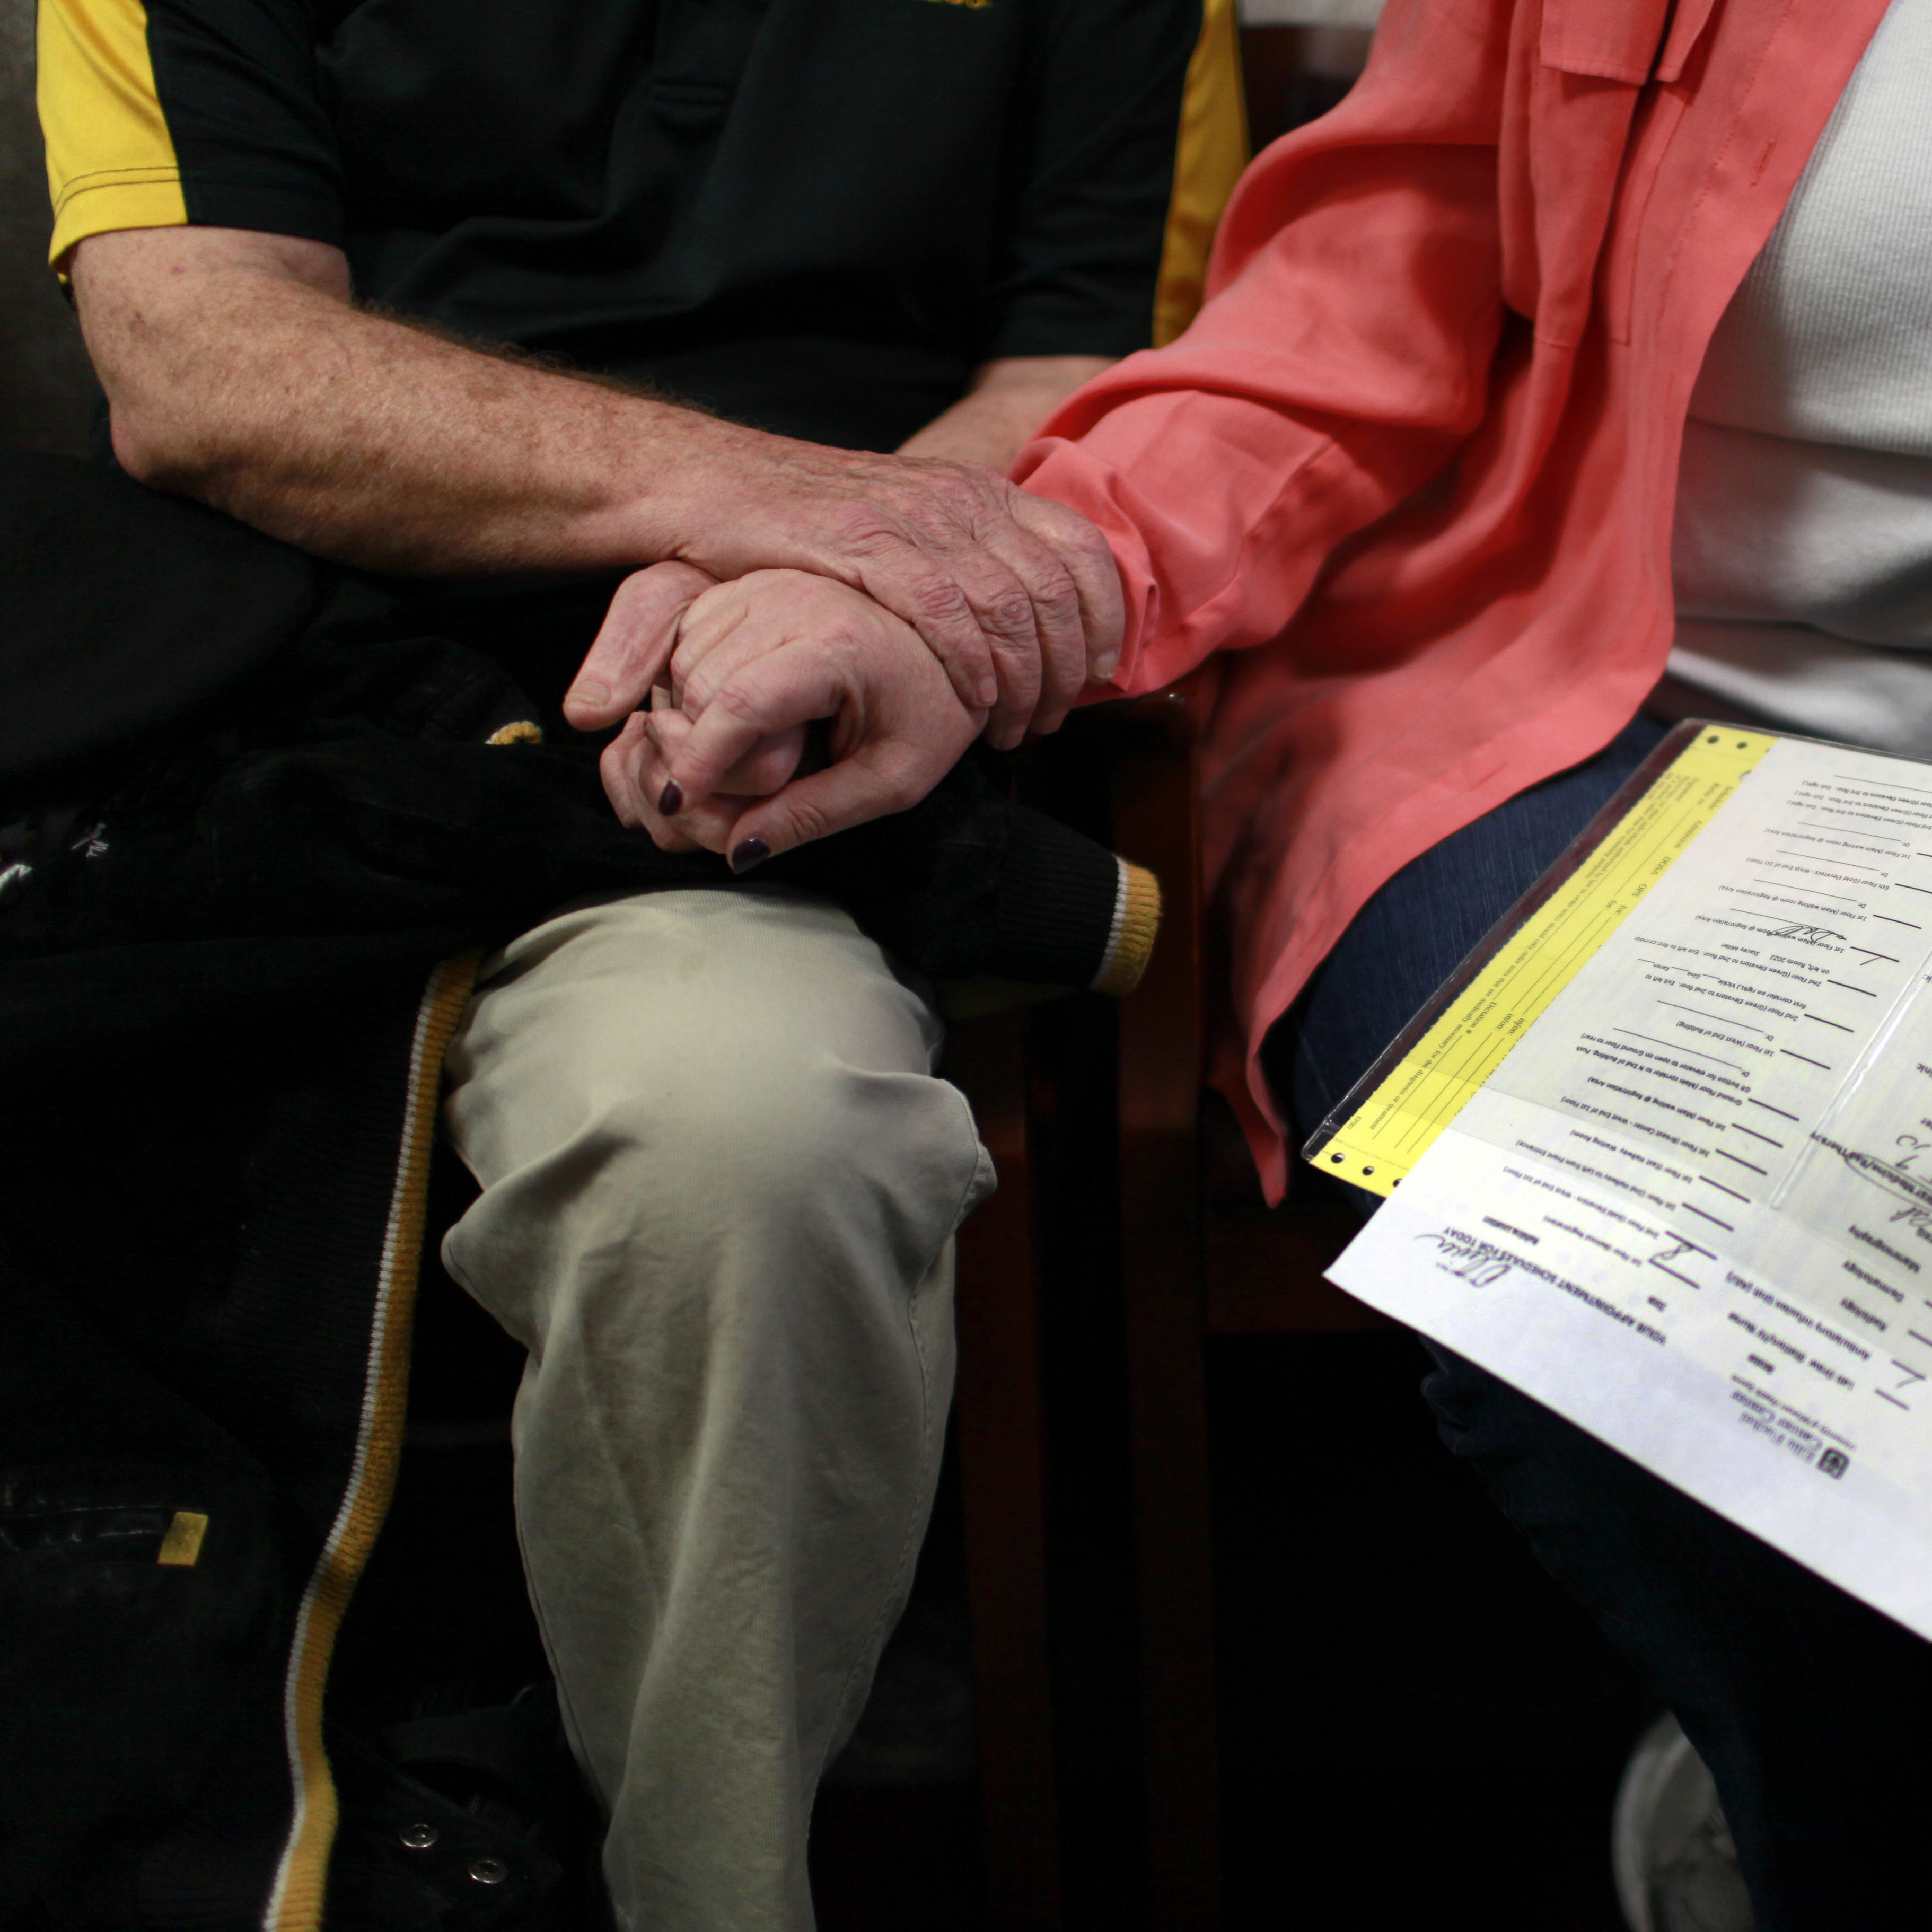 In a Tuesday, Jan. 17, 2012 photo, David Oliver, left, holds his wife's hand as Debra Parker Oliver clutches her husband's medical records while they wait for David to undergo medical tests at Ellis Fischel Cancer Center in Columbia, Mo.